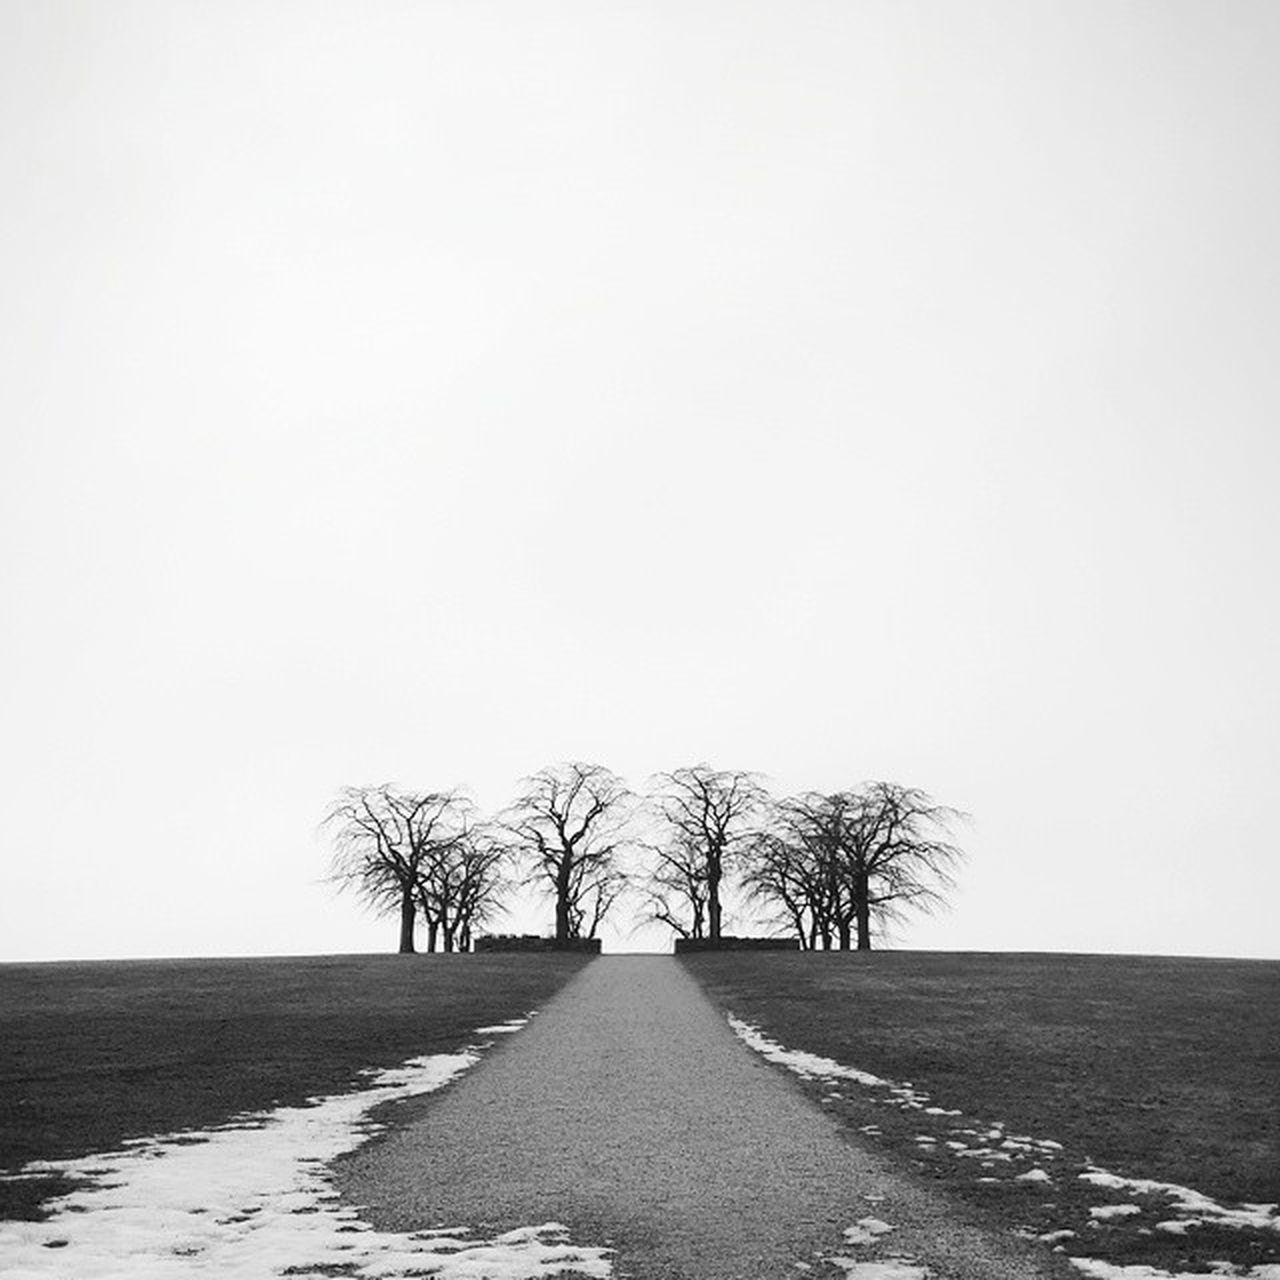 bare tree, tree, clear sky, tranquility, tranquil scene, nature, landscape, beauty in nature, the way forward, field, outdoors, day, scenics, road, sky, no people, lone, cold temperature, branch, snow, grass